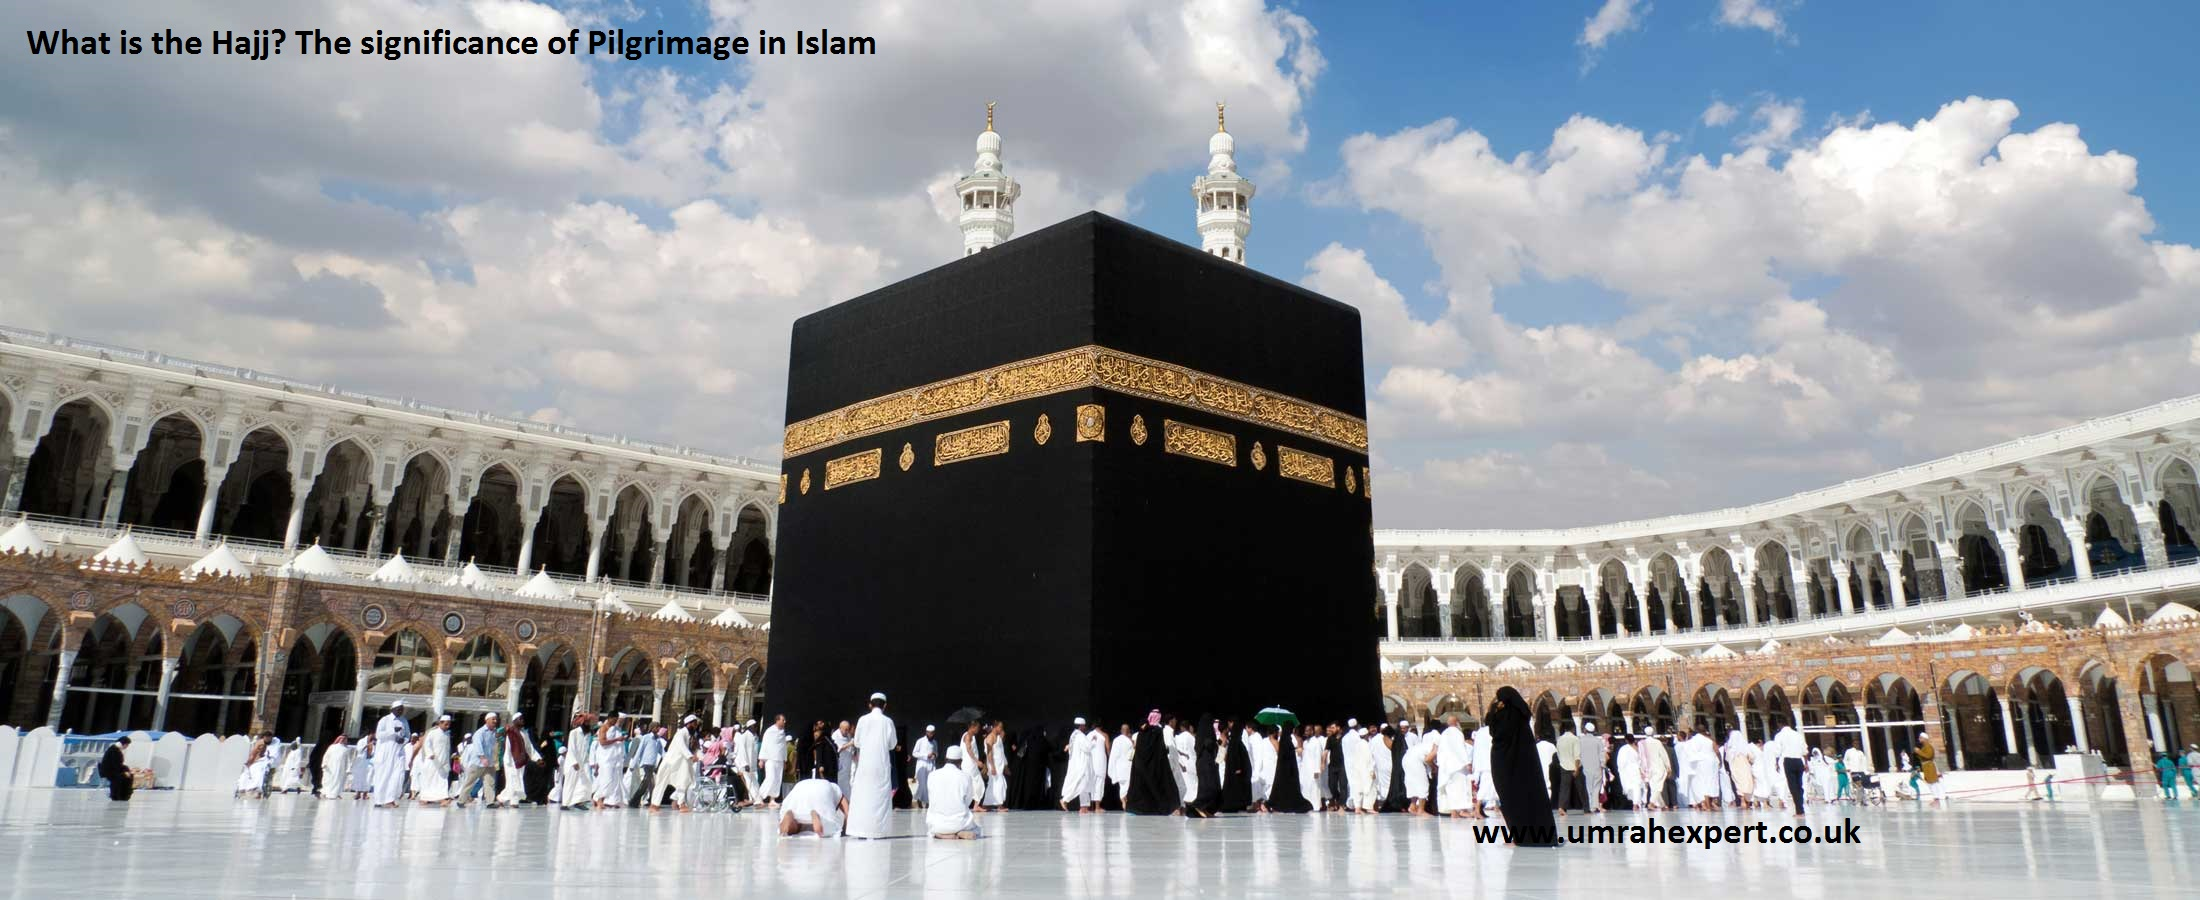 What is the Hajj? The significance of Pilgrimage in Islam